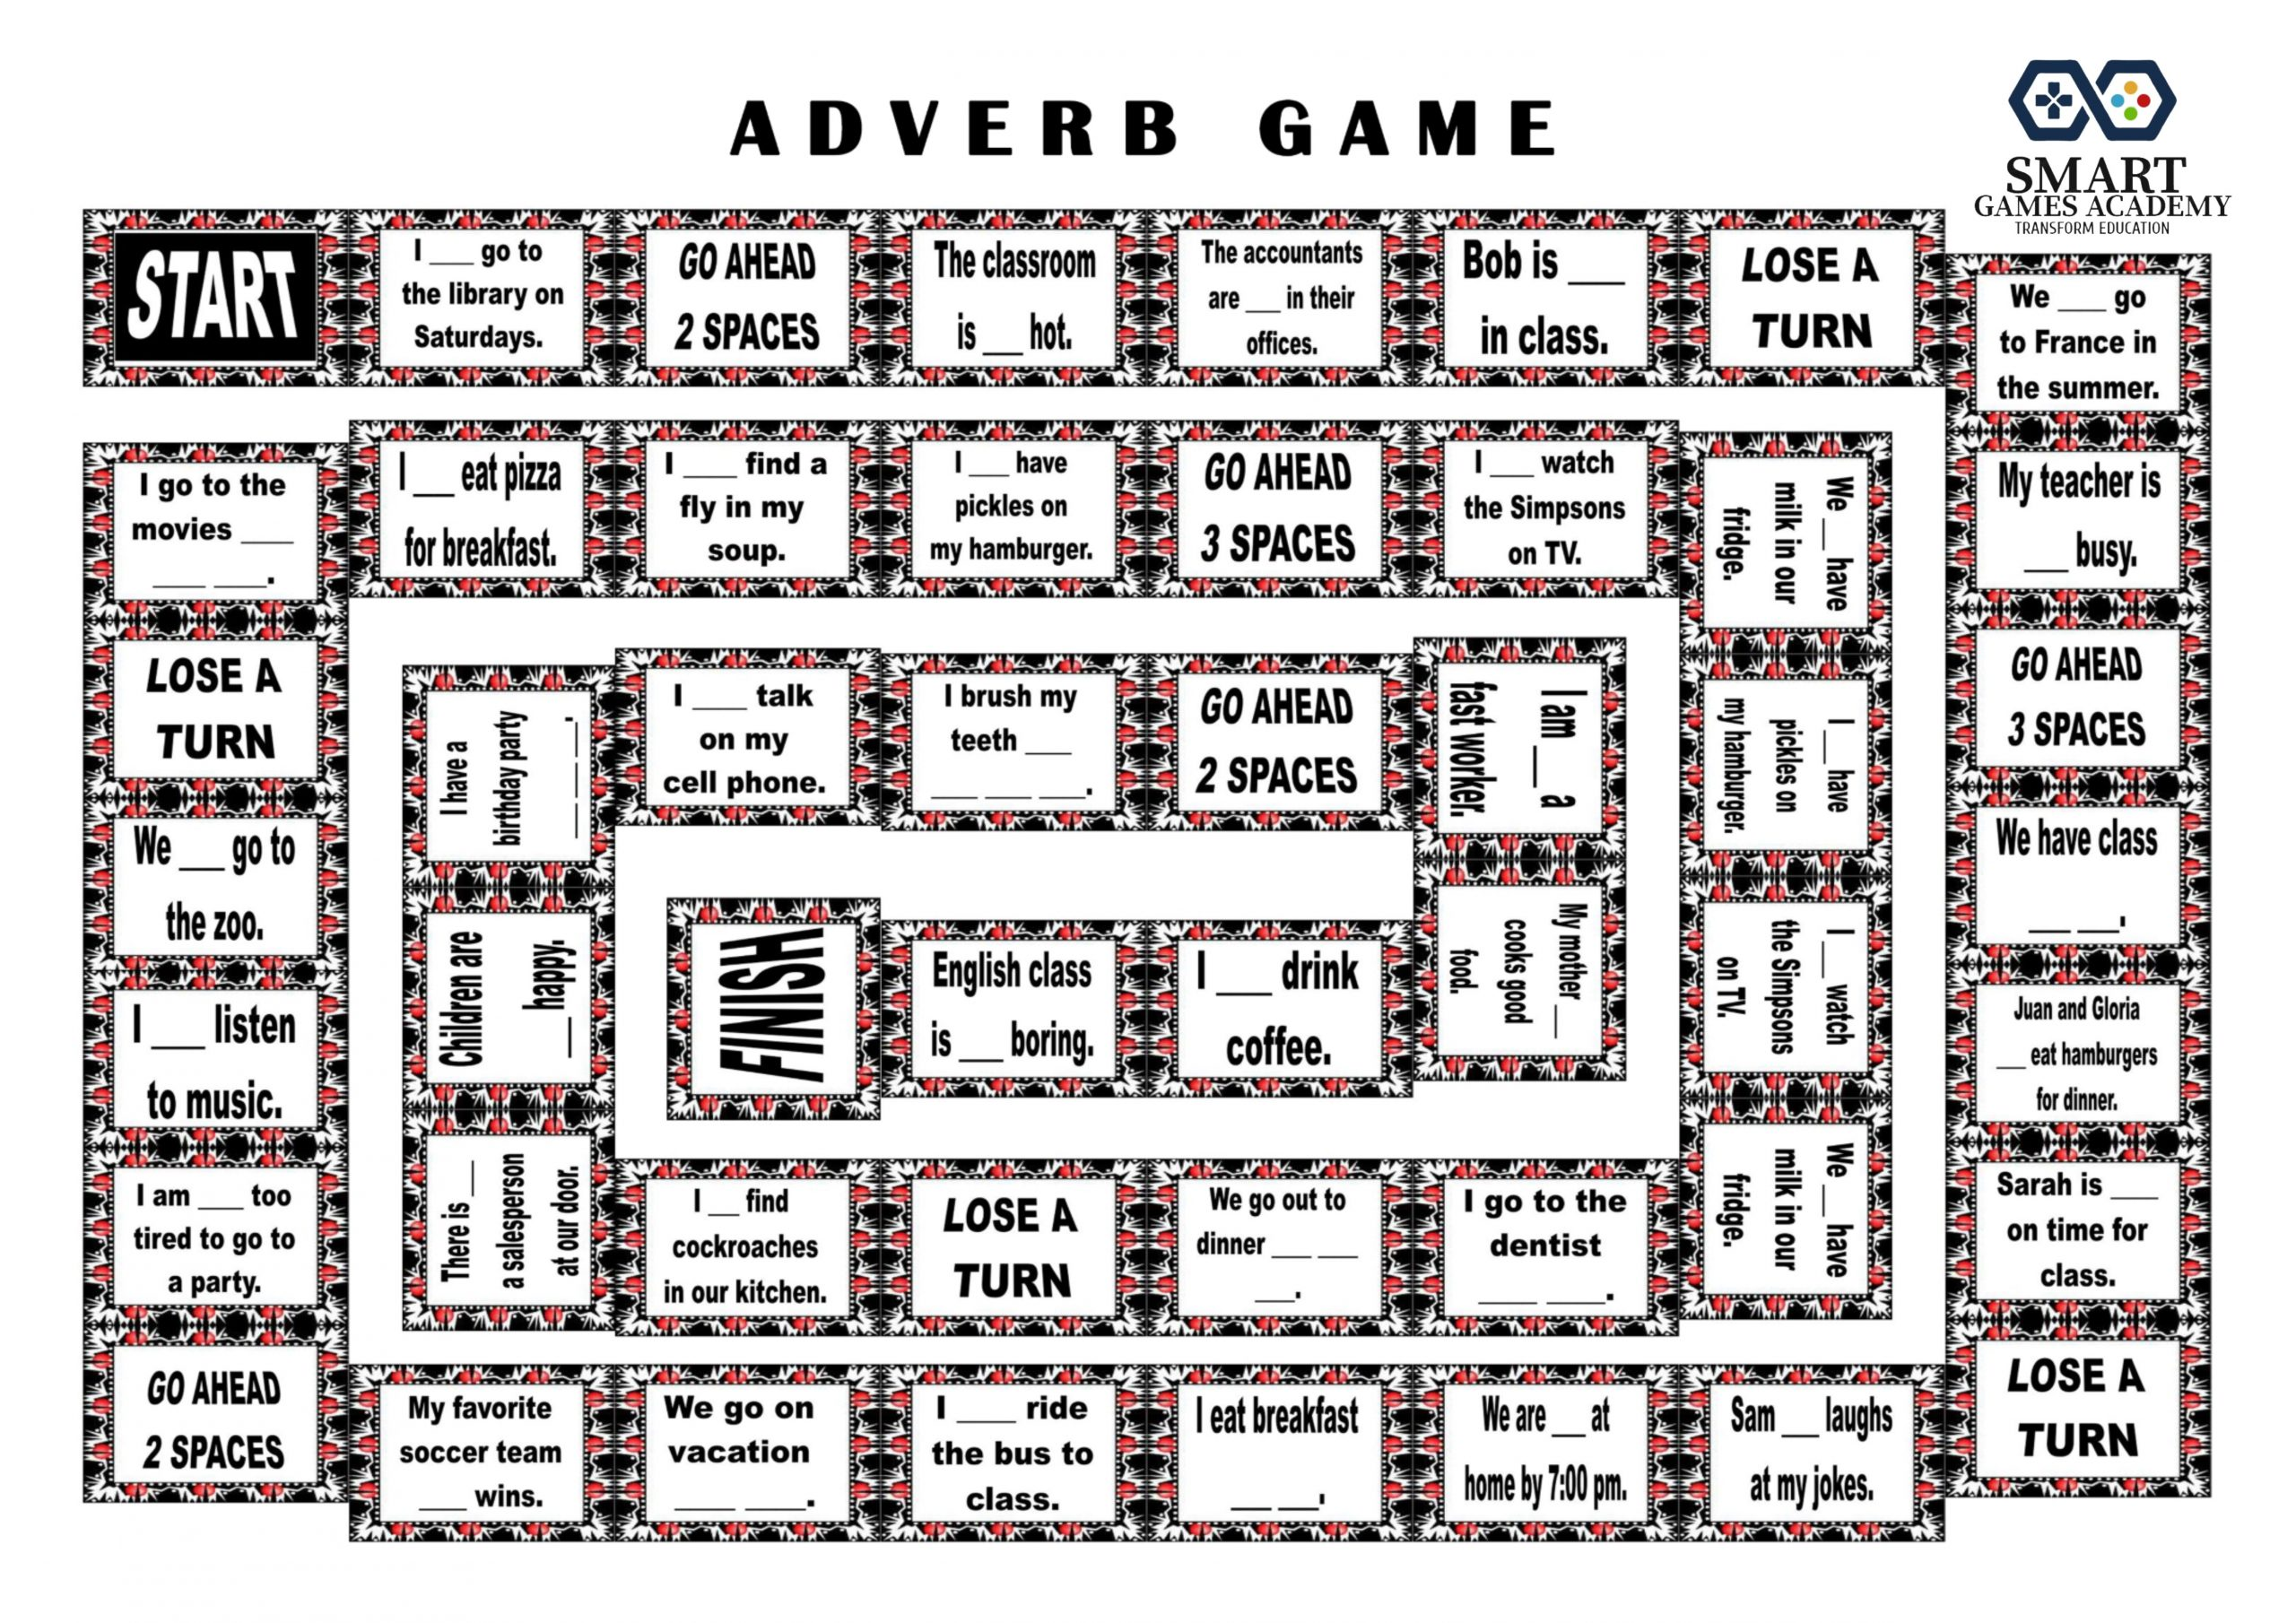 adverb game